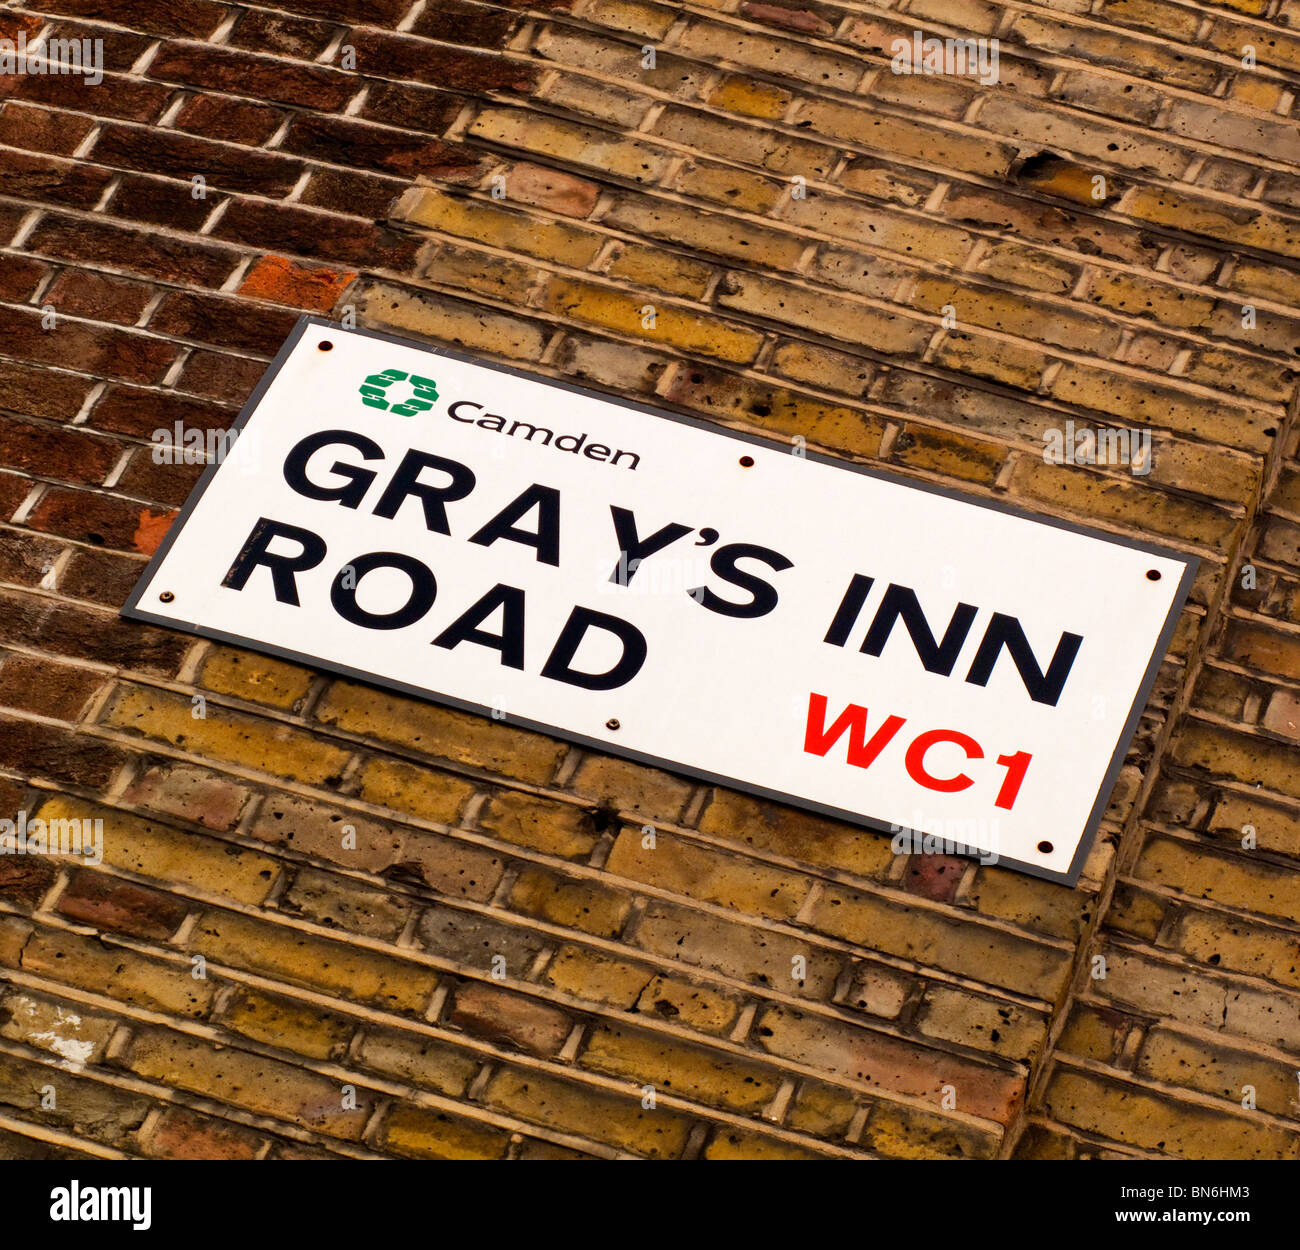 Gray's Inn Road WC1 street sign on a brick wall in King's Cross north London England UK - Stock Image